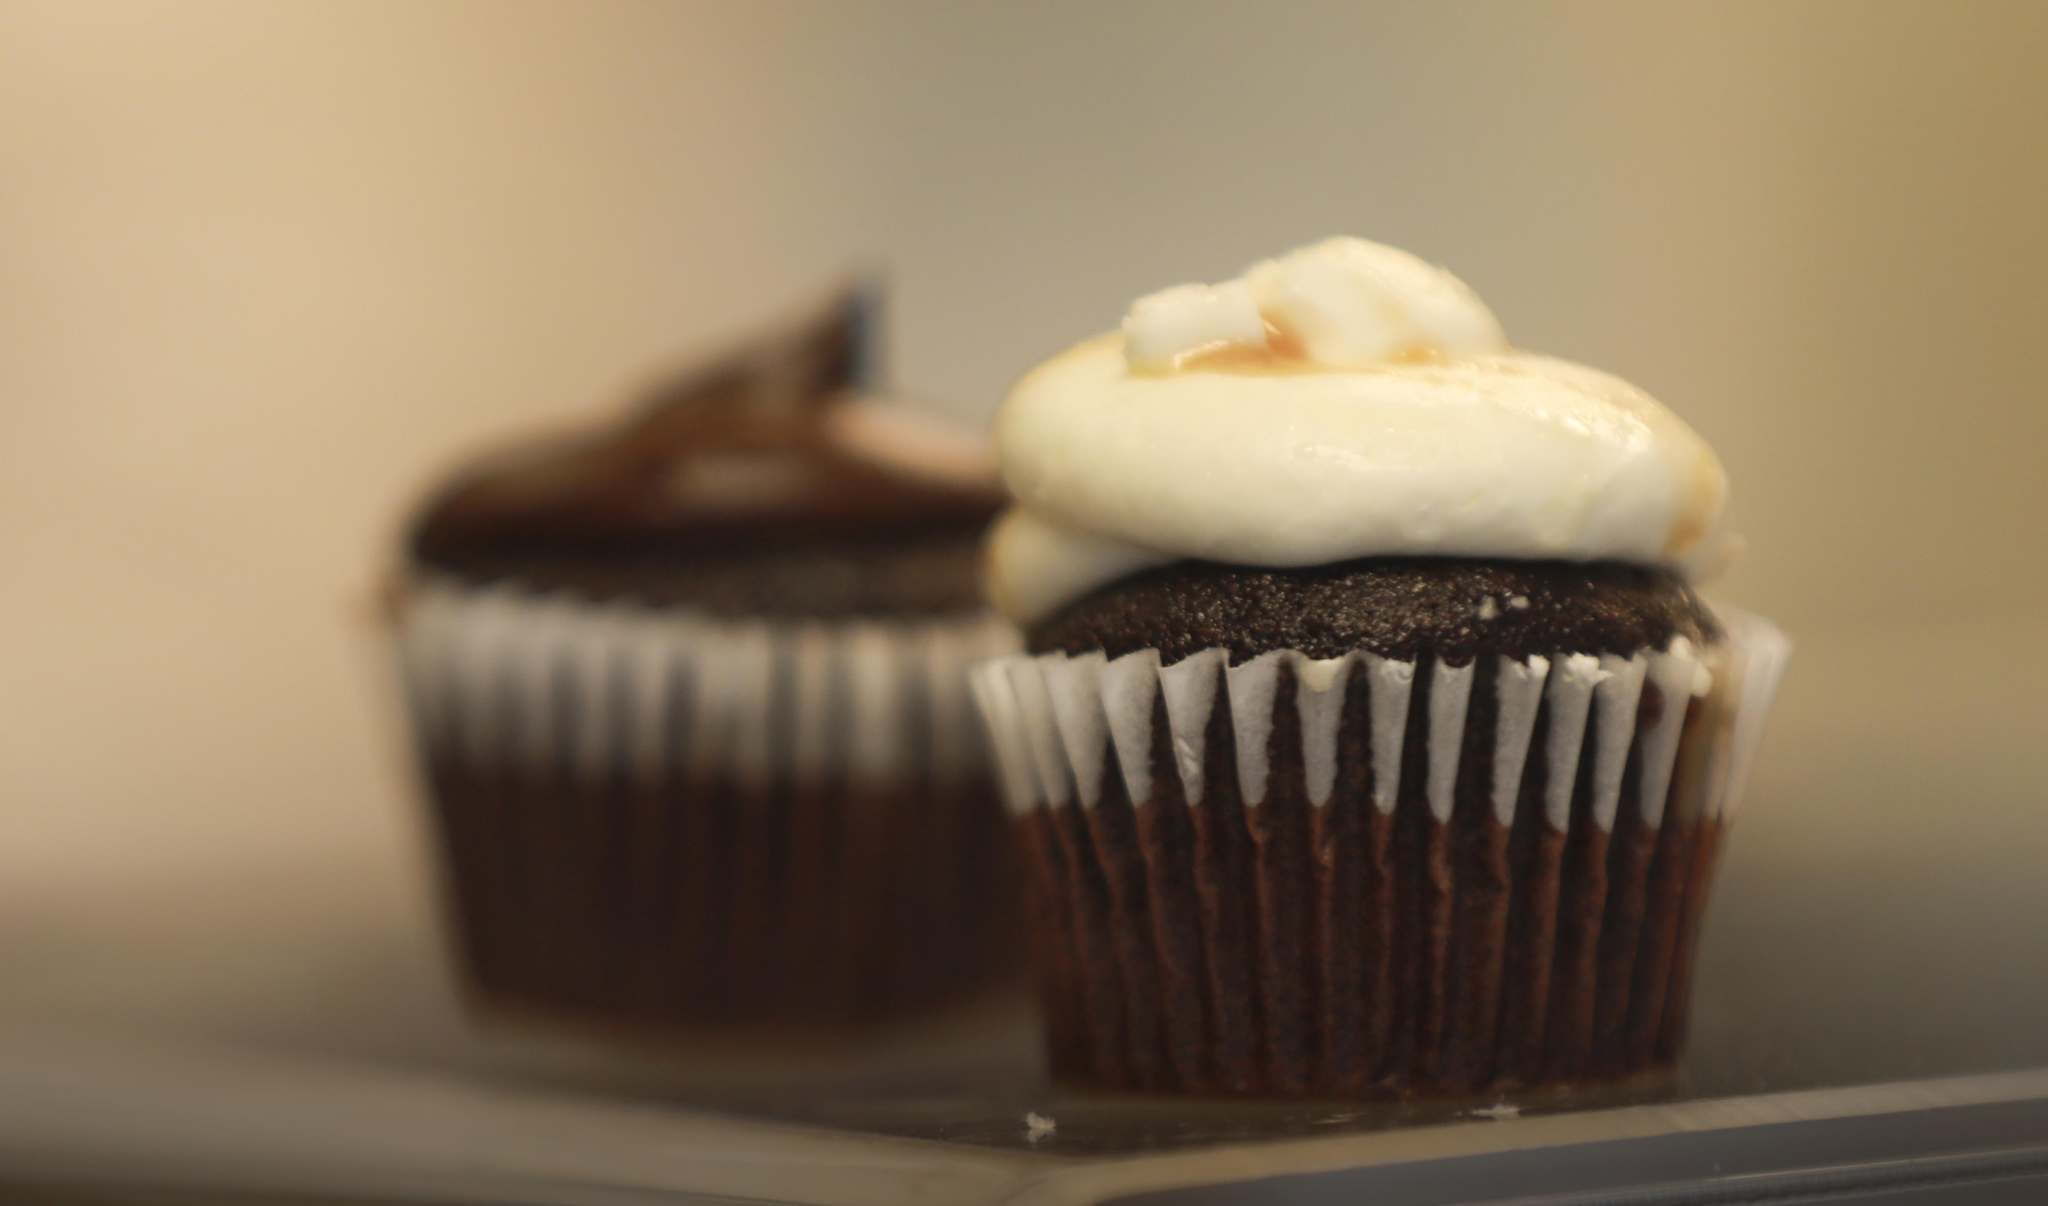 Canteen Coffee's baked goods include cupcakes from Lilac Bakery.</p>